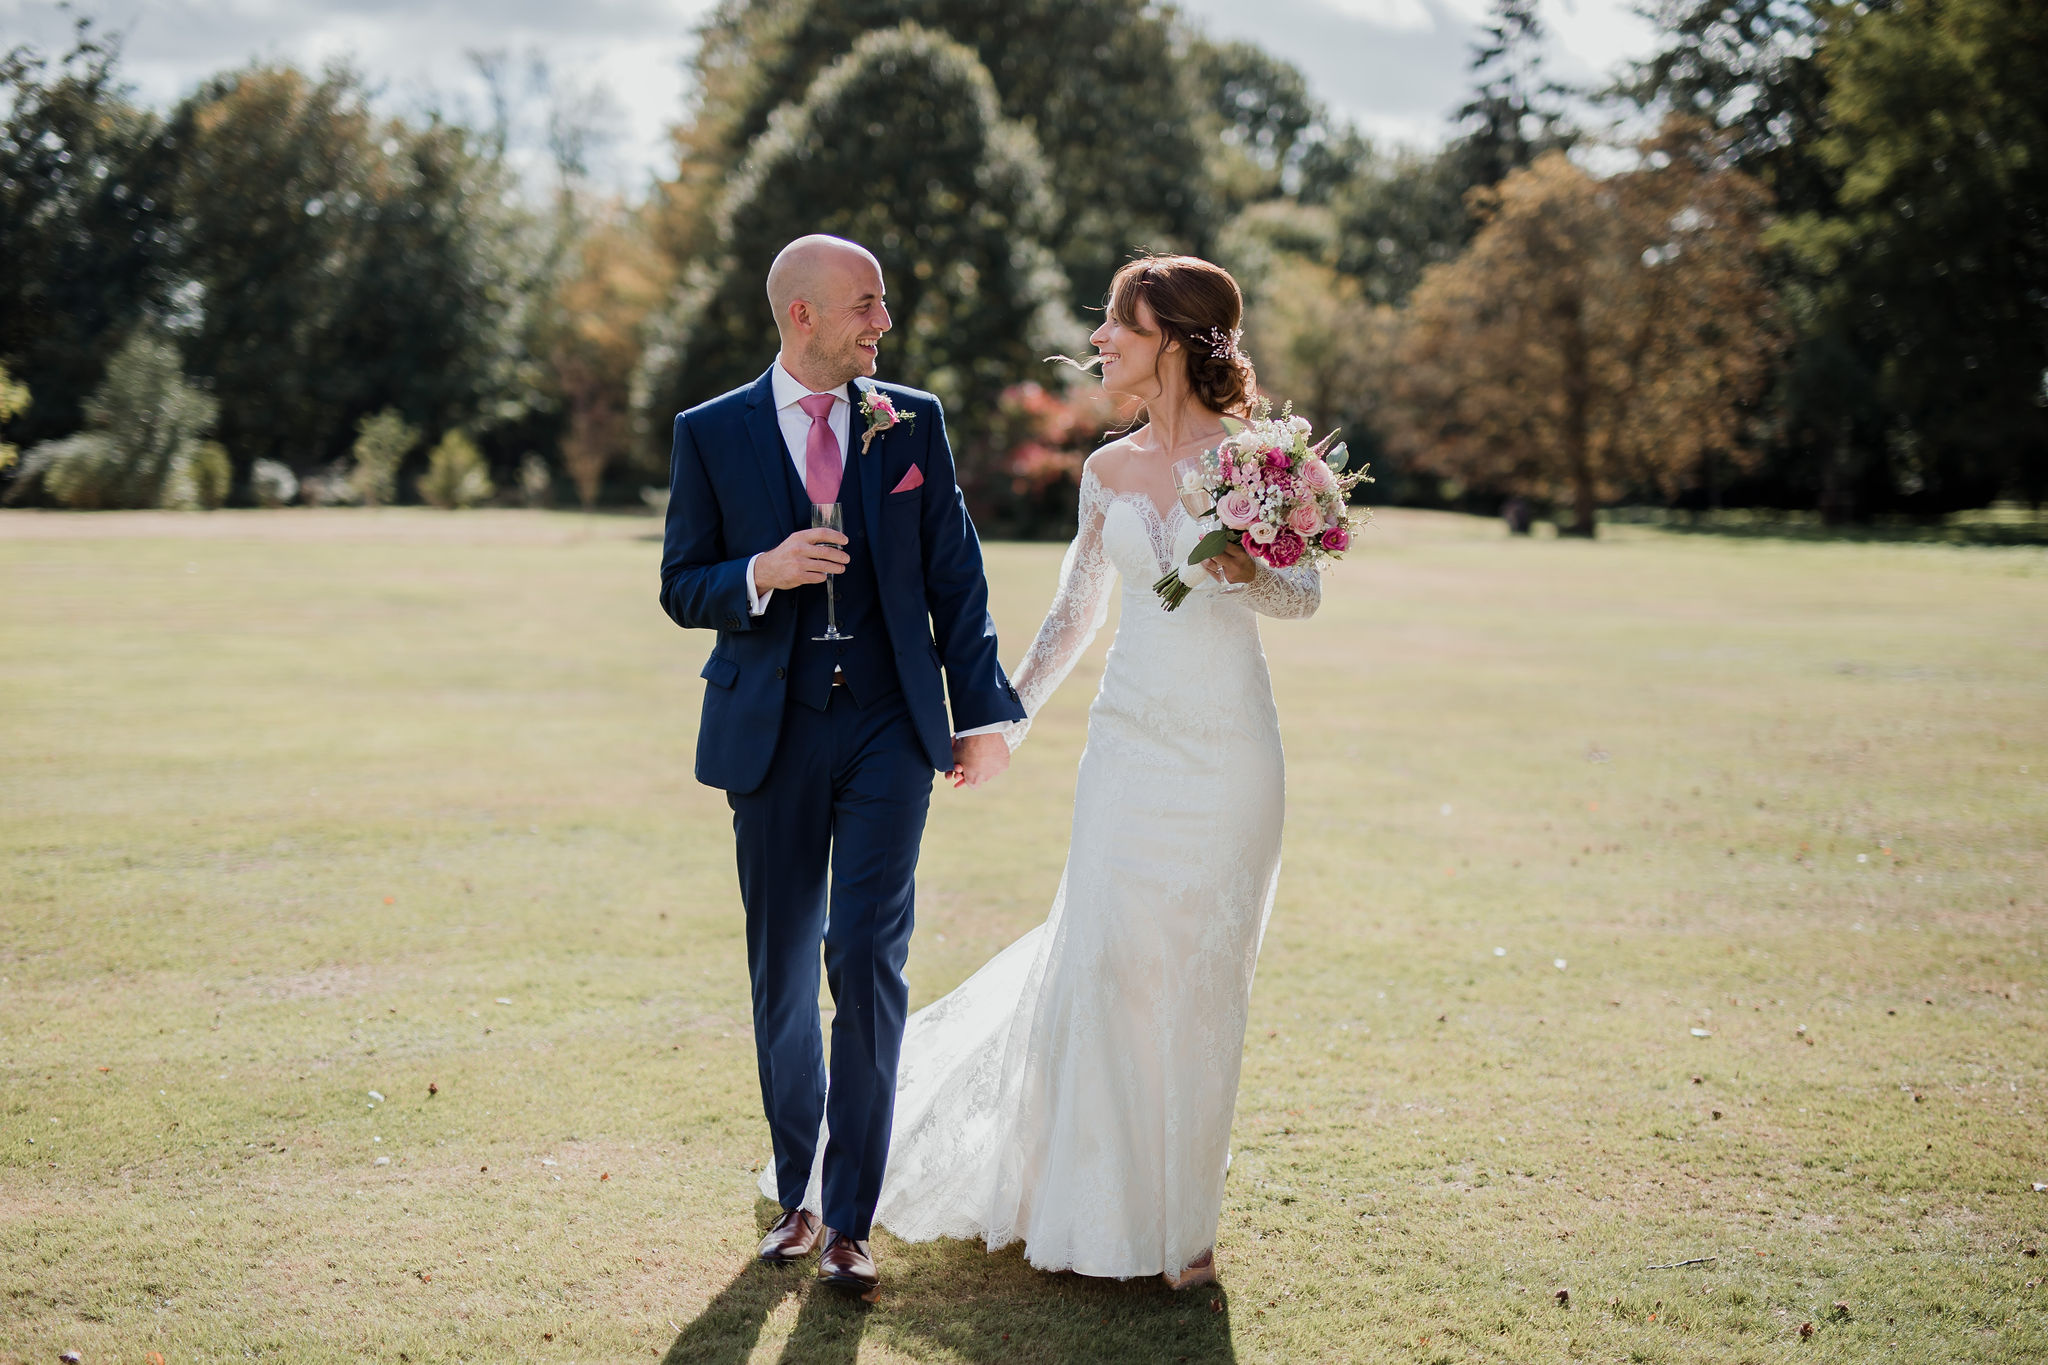 Beautiful Bristol wedding photography by Charlie Tyjas of Bristol Contemporary Photography.